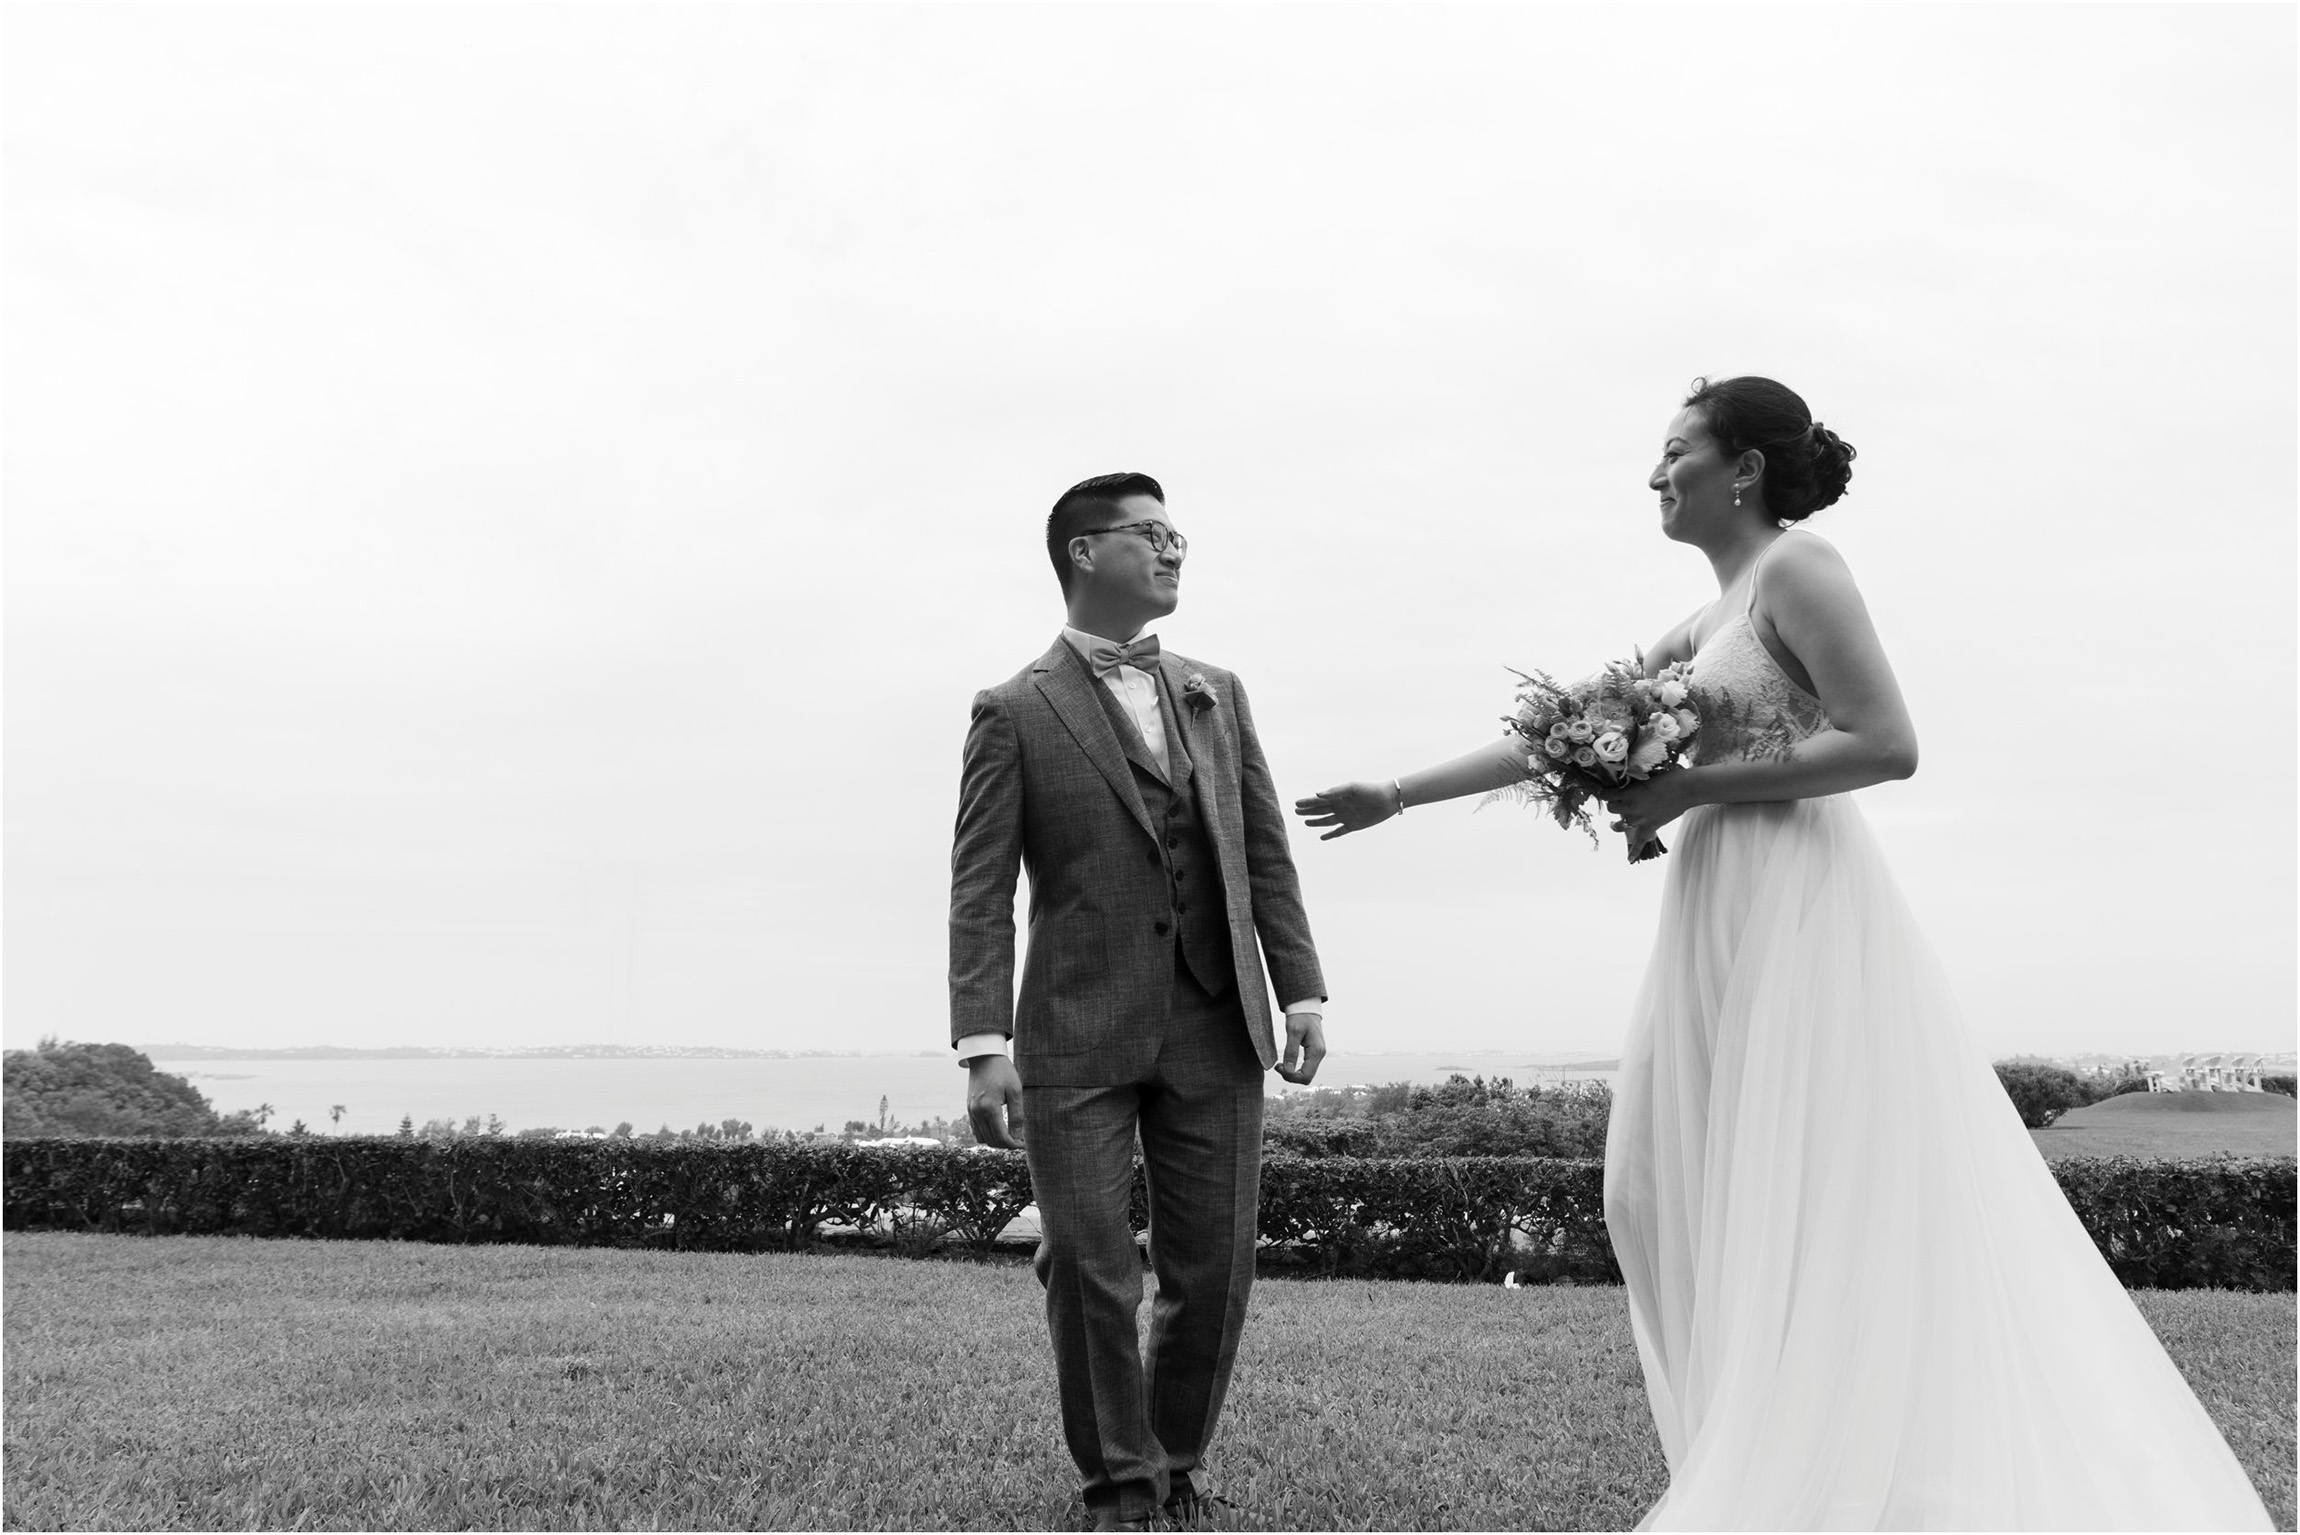 ©FianderFoto_Bermuda Wedding Photographer_Fairmont Southampton_Amy_Wilson_134.jpg